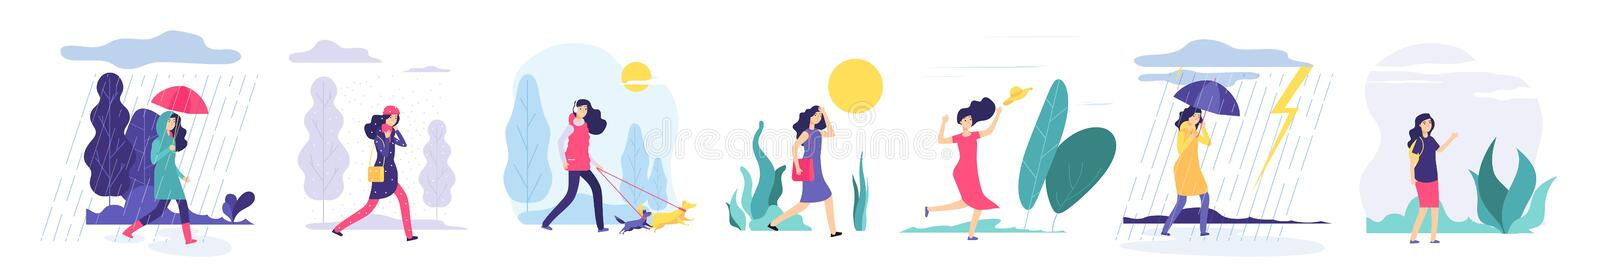 Woman various weather. Girl walking outdoors in different clothes snowfall cloudy wind heat rain with umbrella cold vector illustration